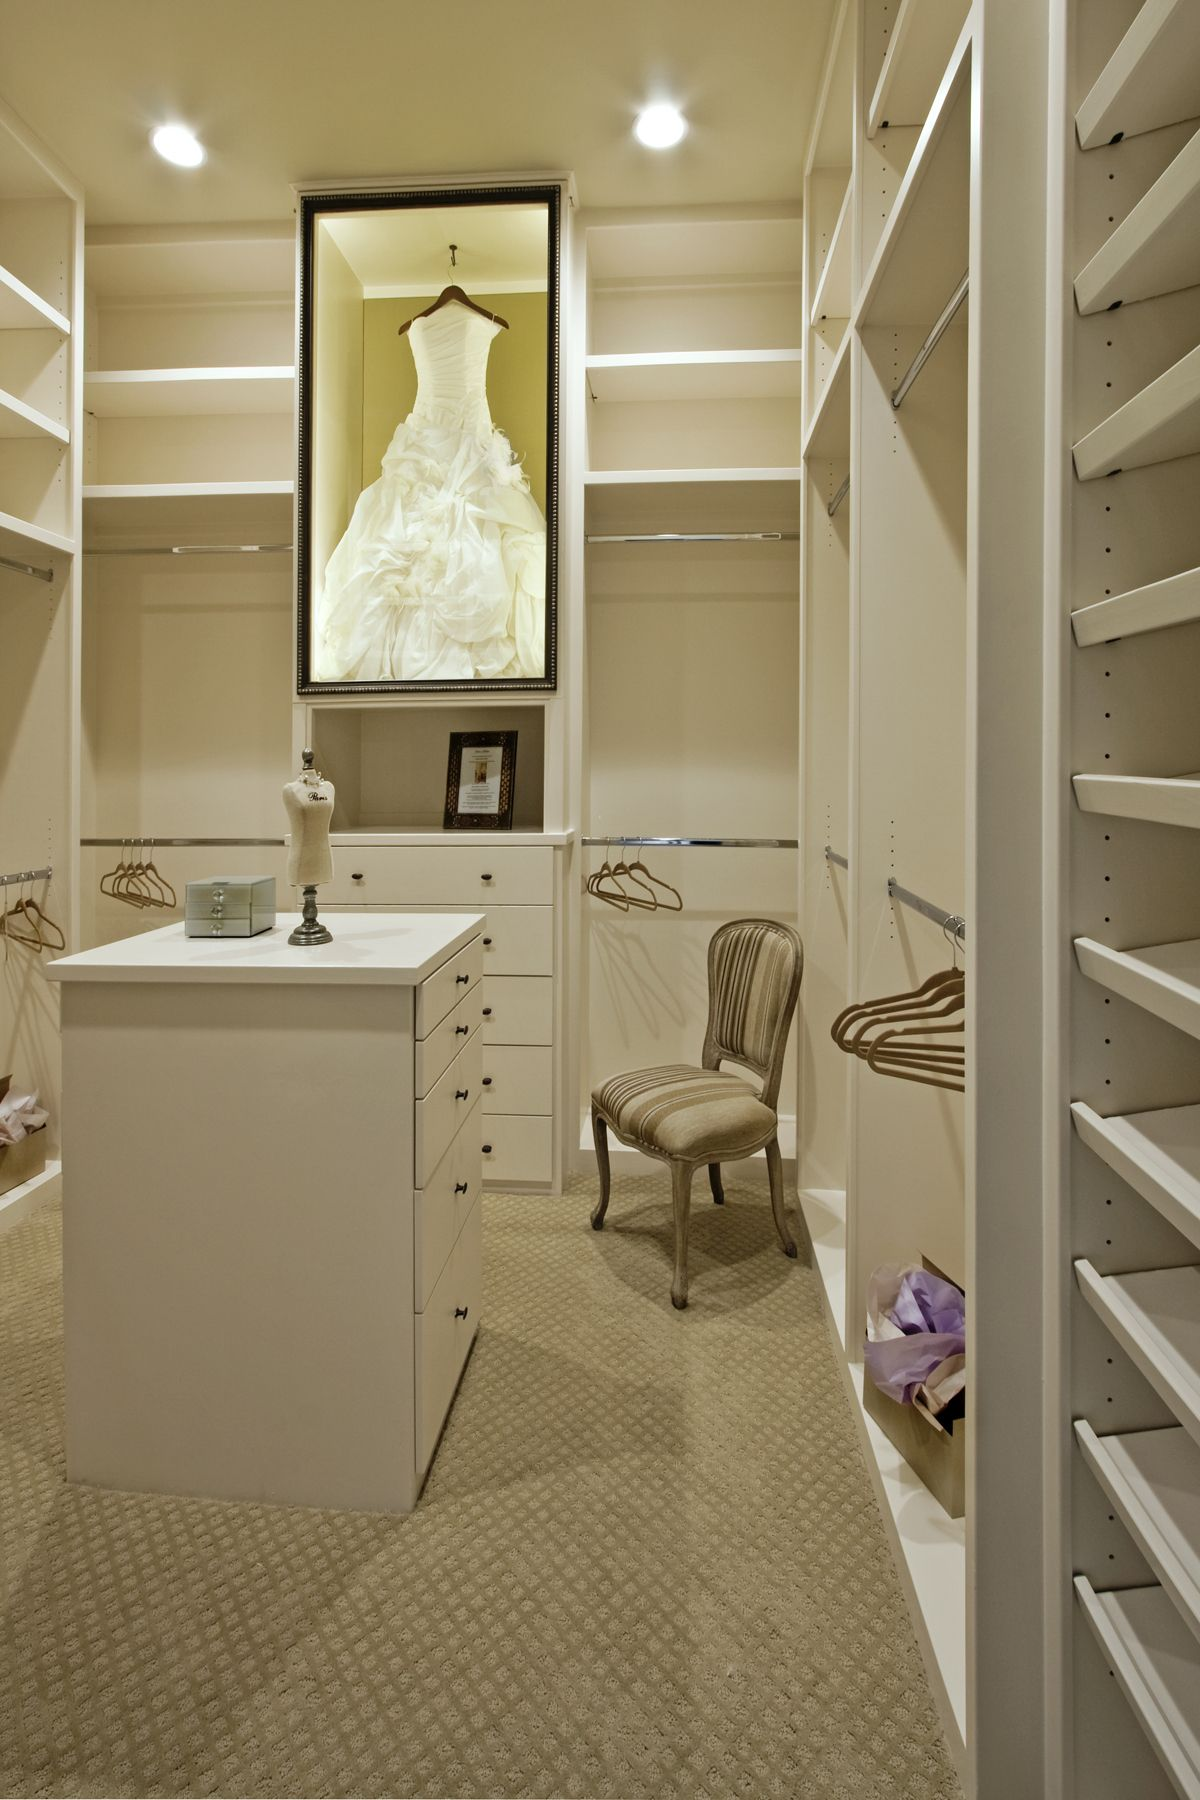 Dress display cabinet google search laundry room ideas